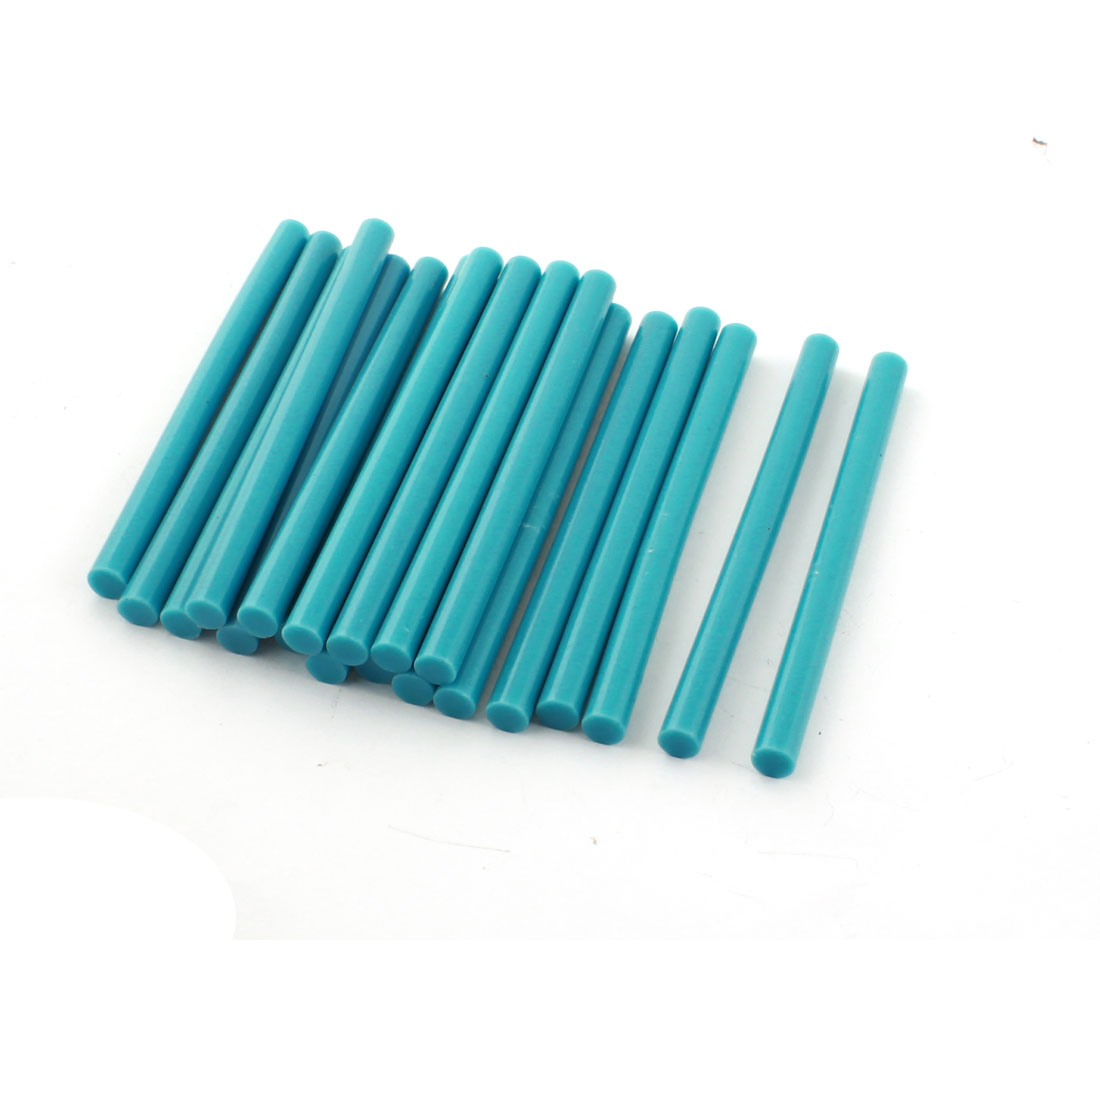 20 Pcs Teal Hot Melt Glue Gun Adhesive Sticks 7mm x 100mm